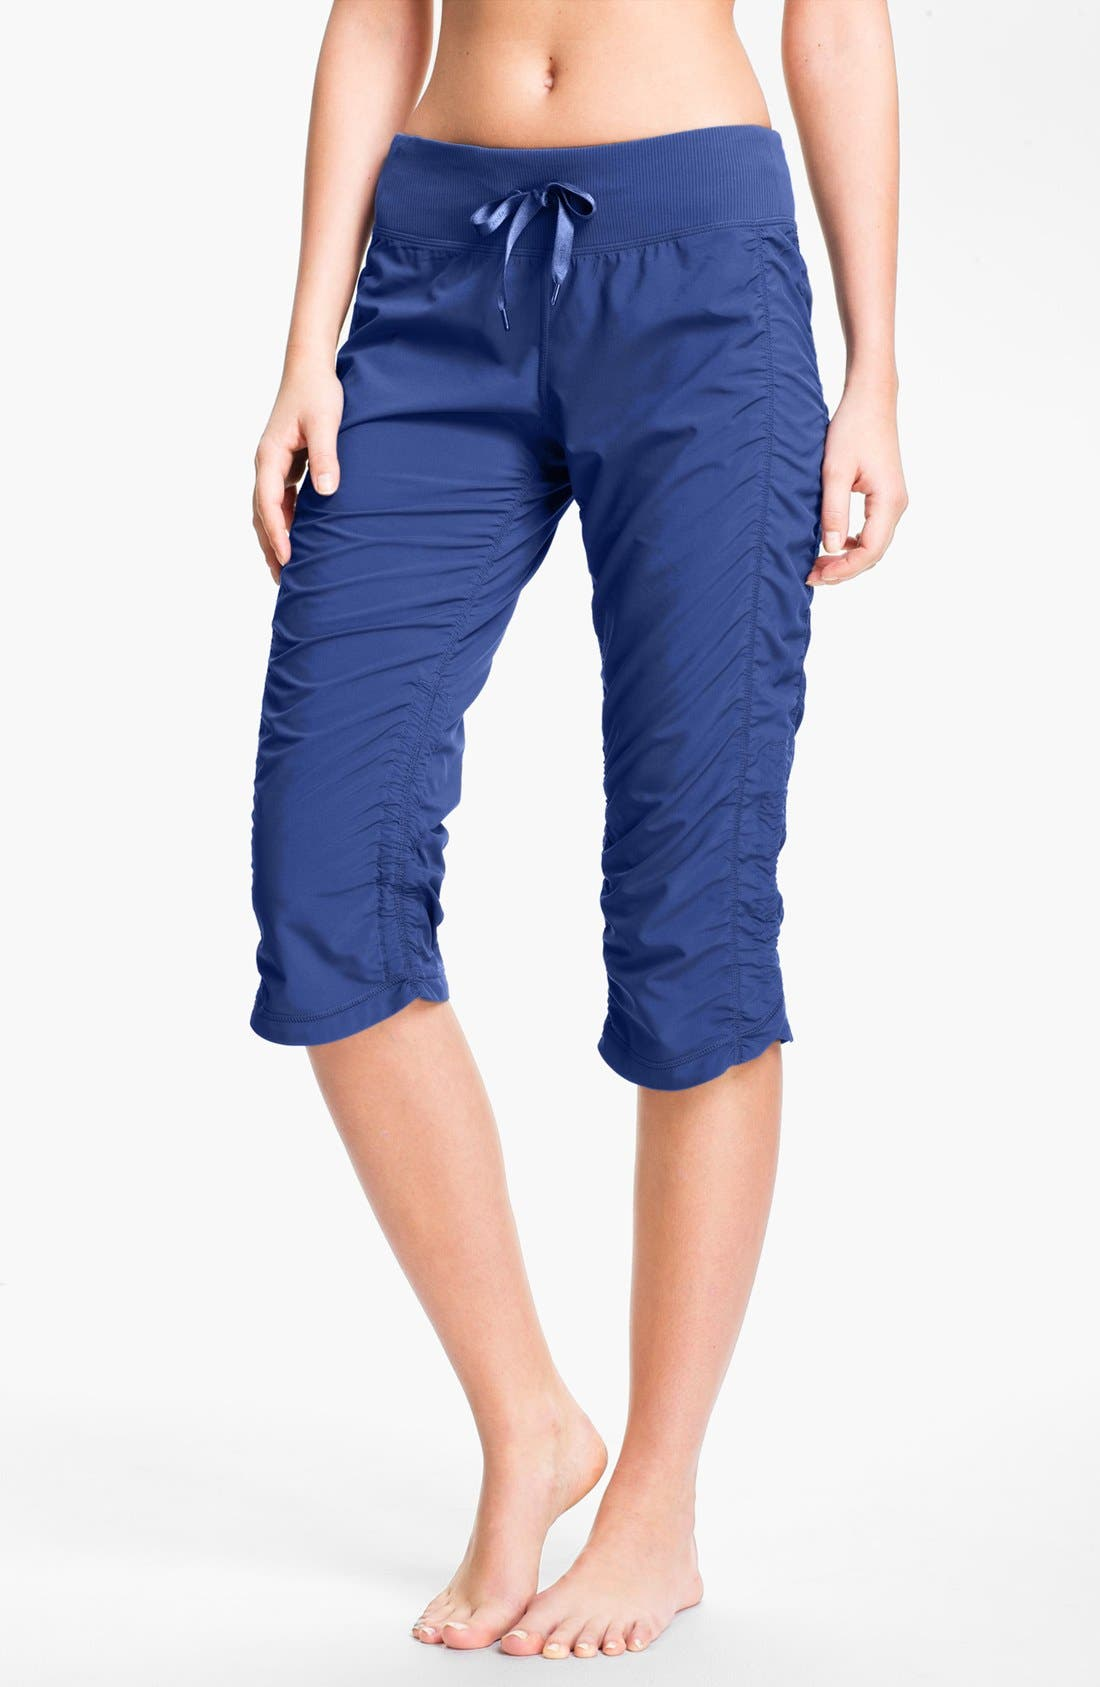 Main Image - Zella 'Move It' Capris